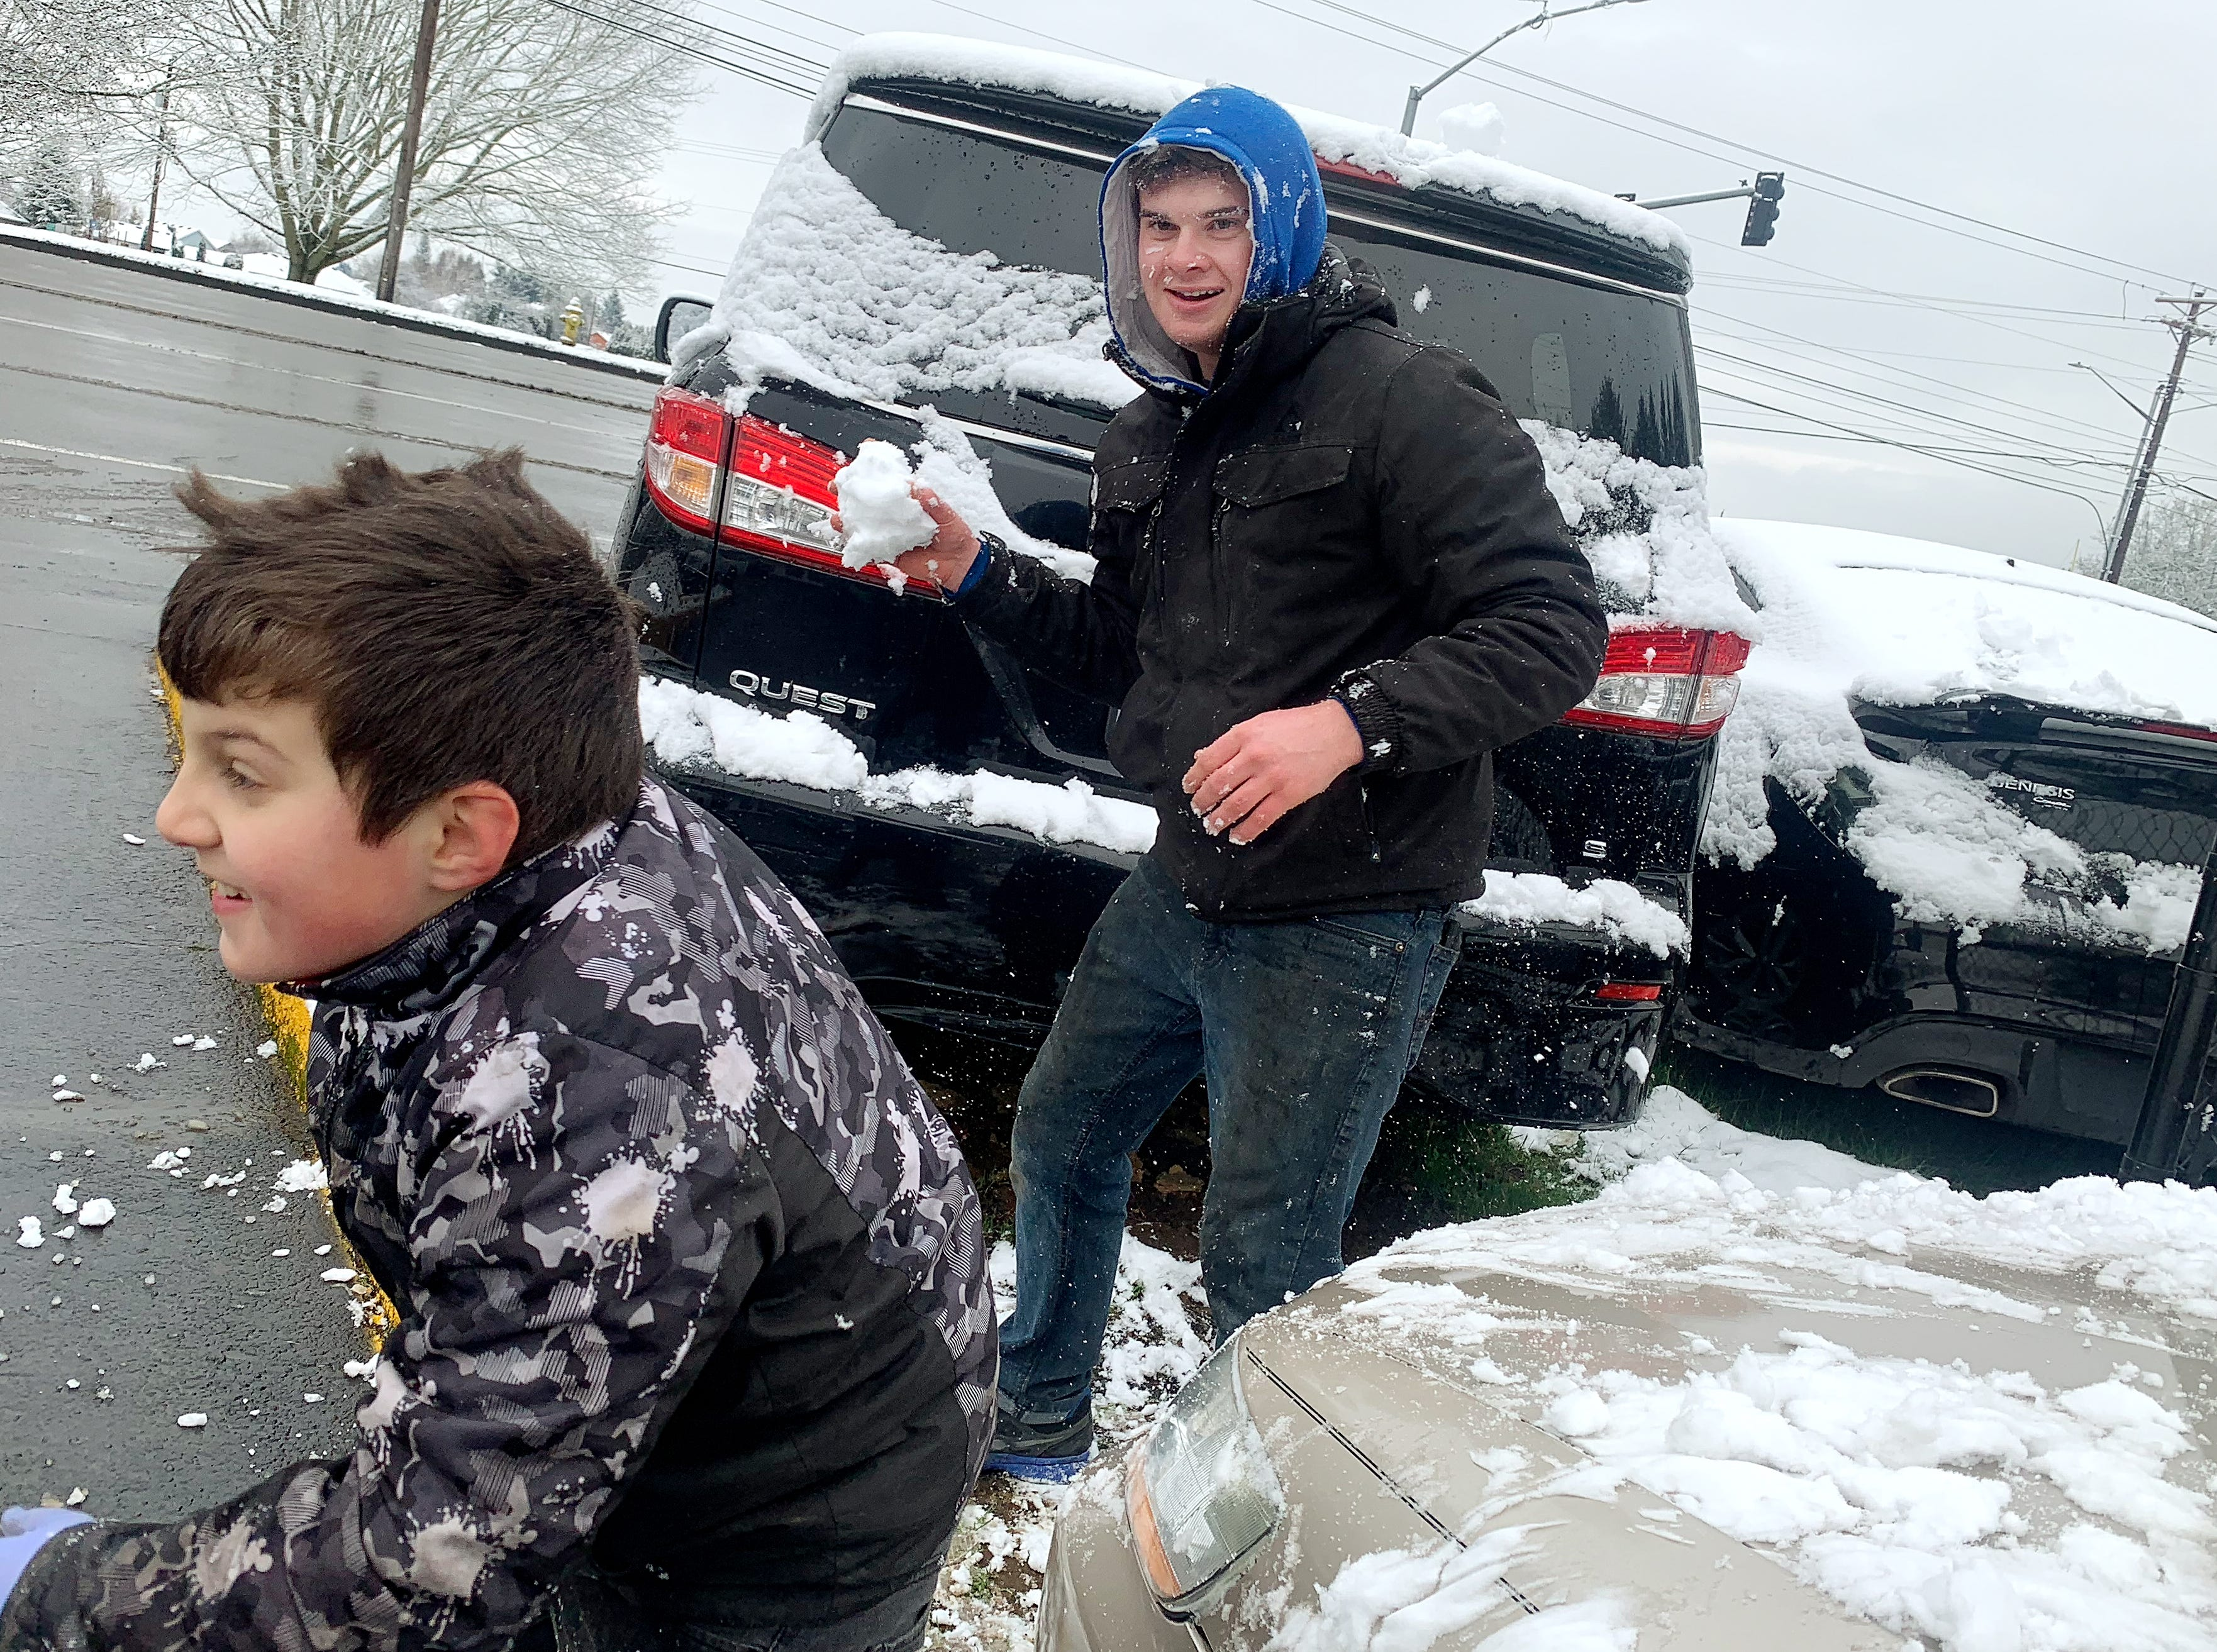 John Arabadji, 17, right, takes aim at his younger brother Sam, 8,  as they enjoy their day off from school with a snowball fight outside of the family business Tuesday, February 5, 2019 in Salem.